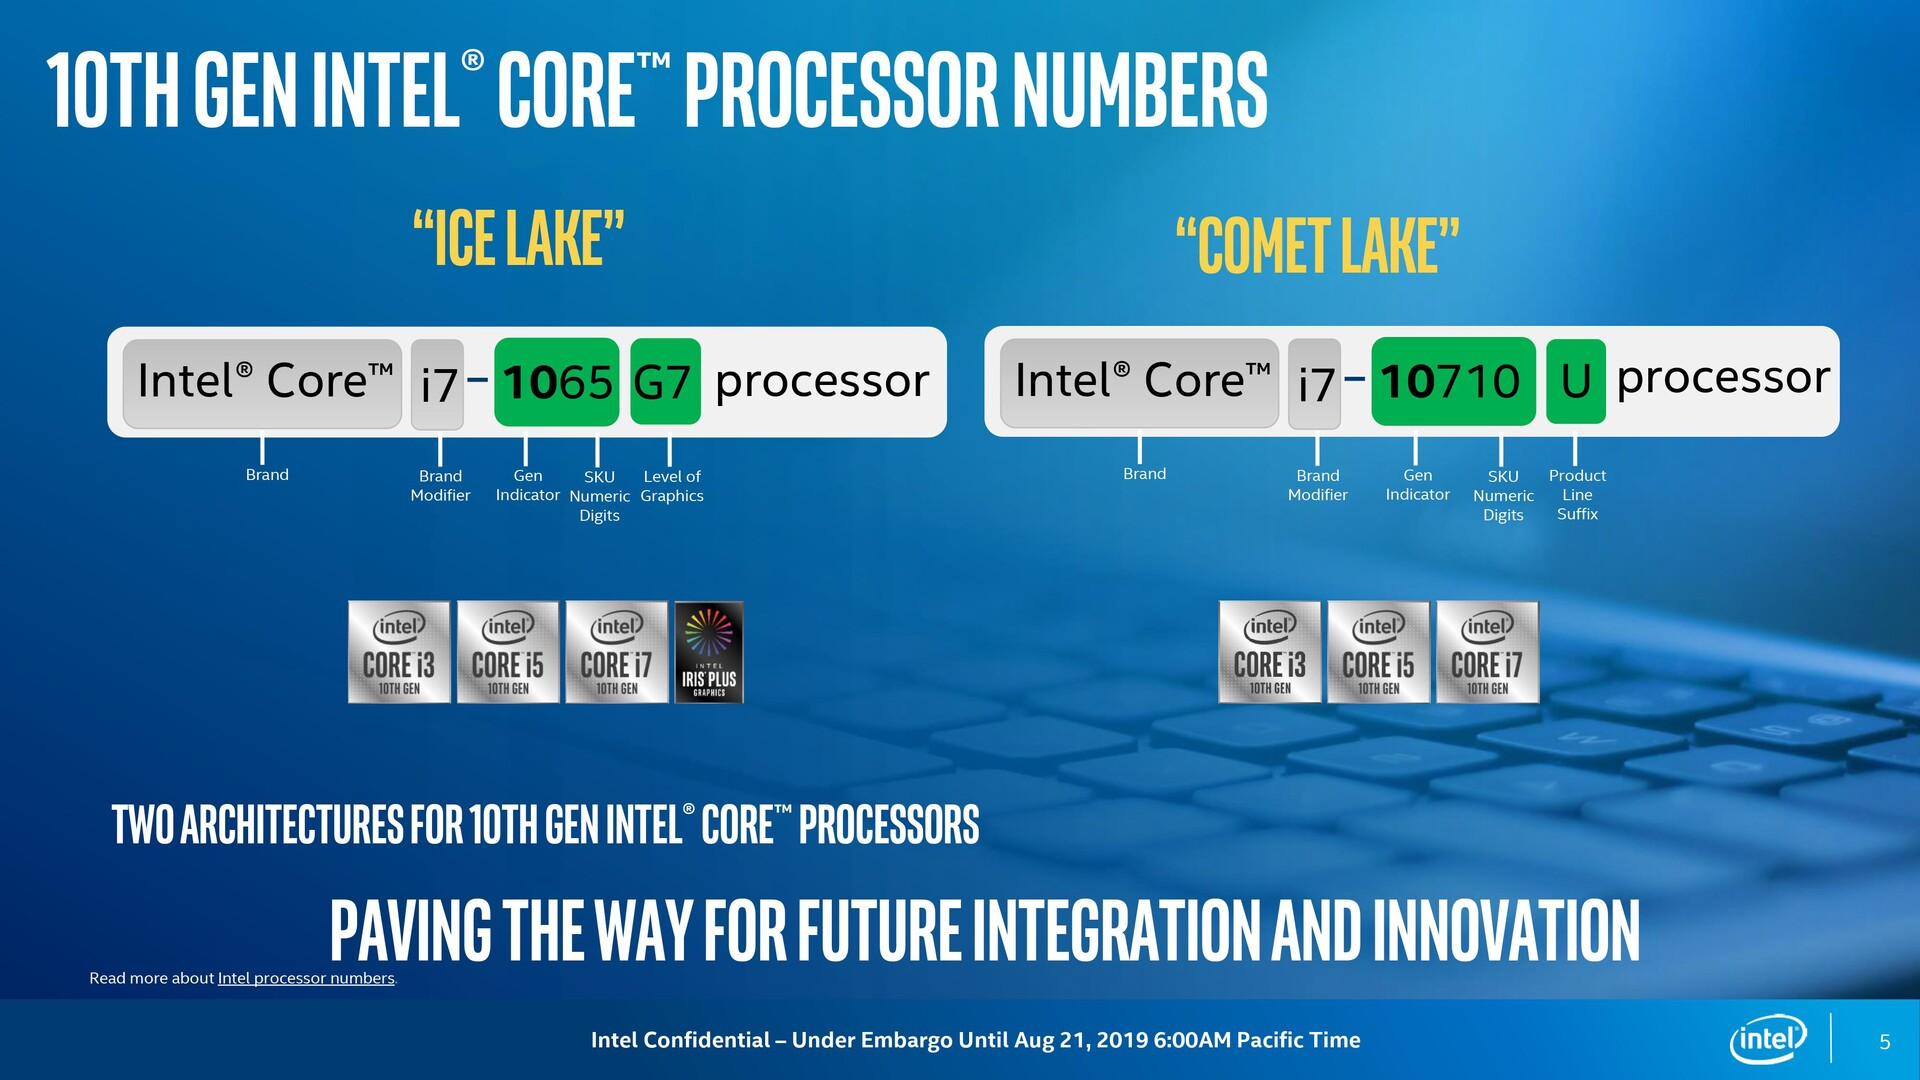 Intel Expands 10th Gen Intel Core Mobile Processor Lineup